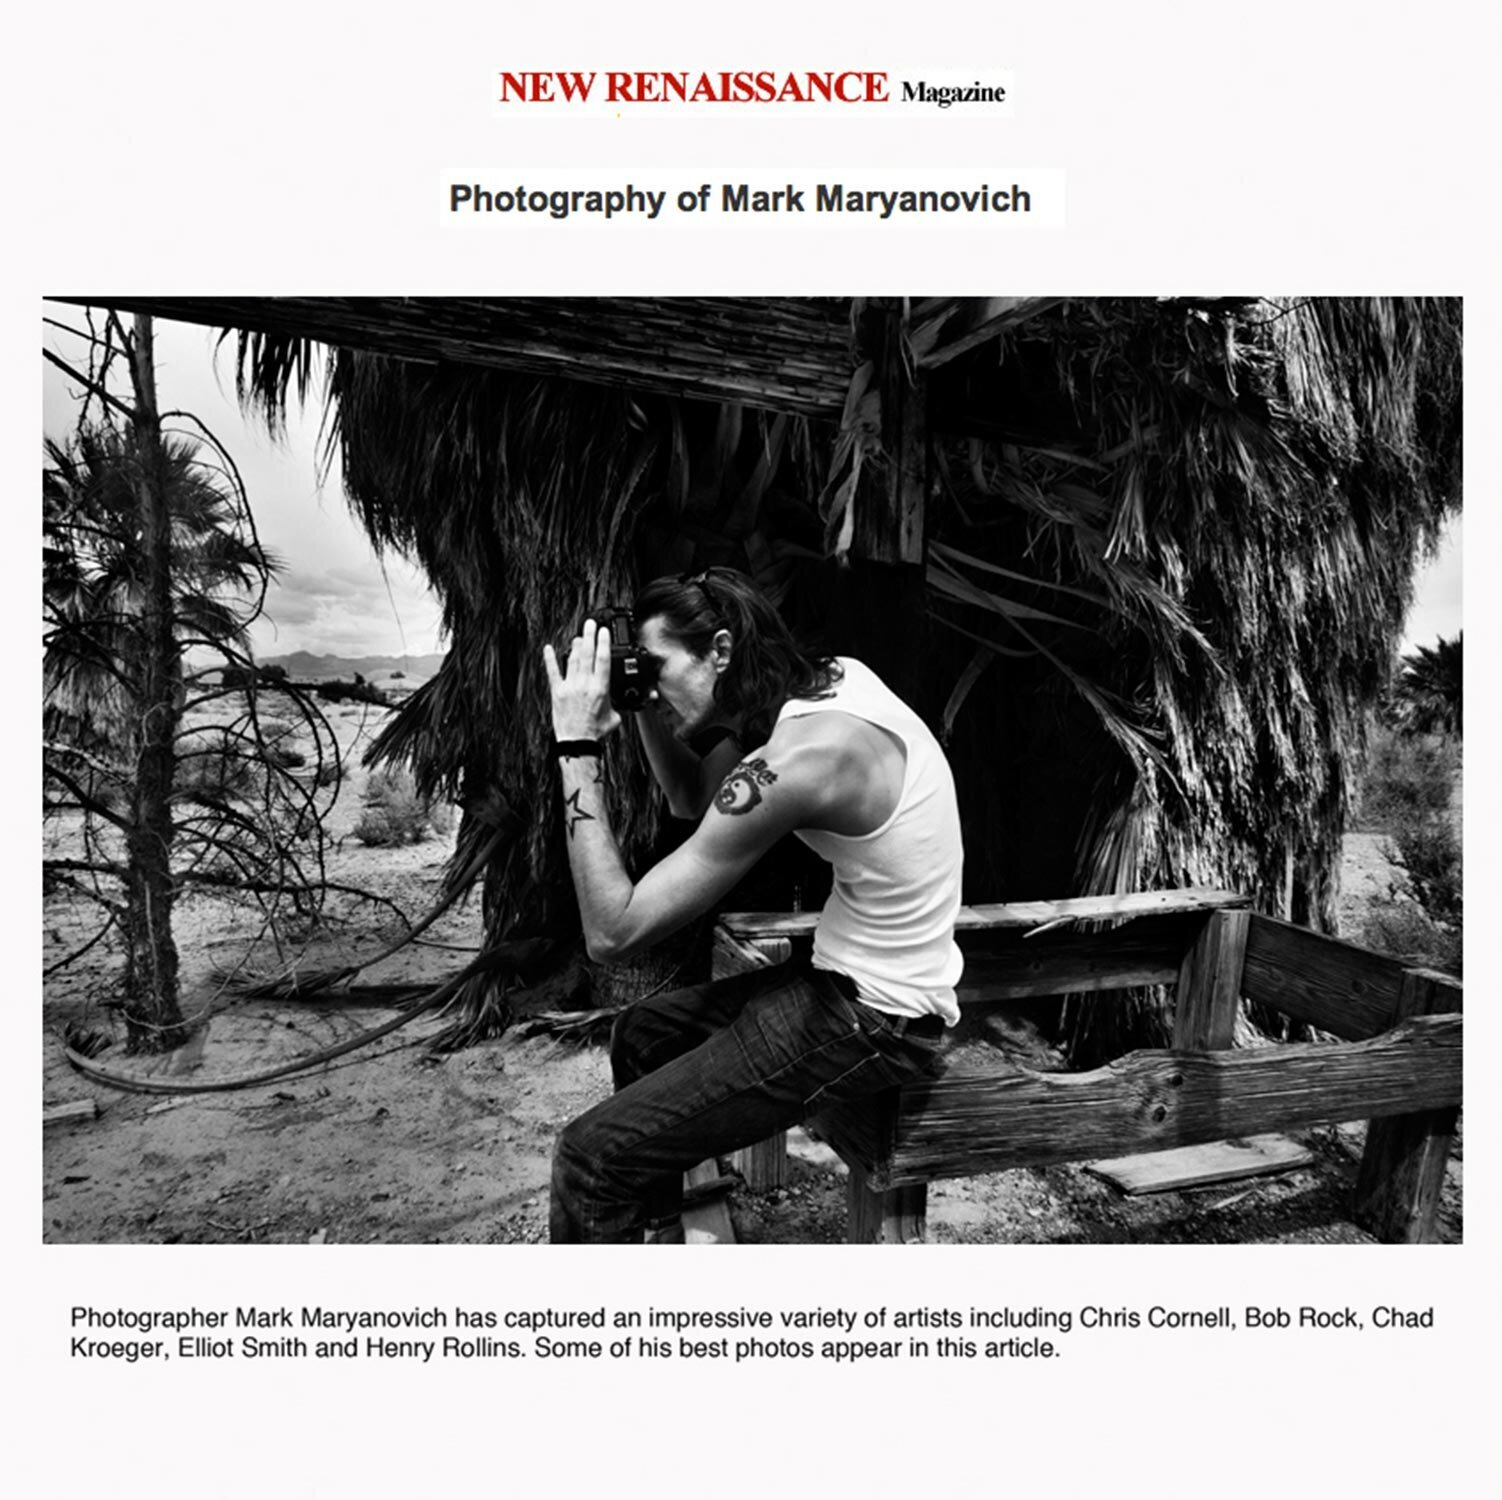 interview-mark-maryanovich-new-renaissance-magazine-page-1-los-angeles